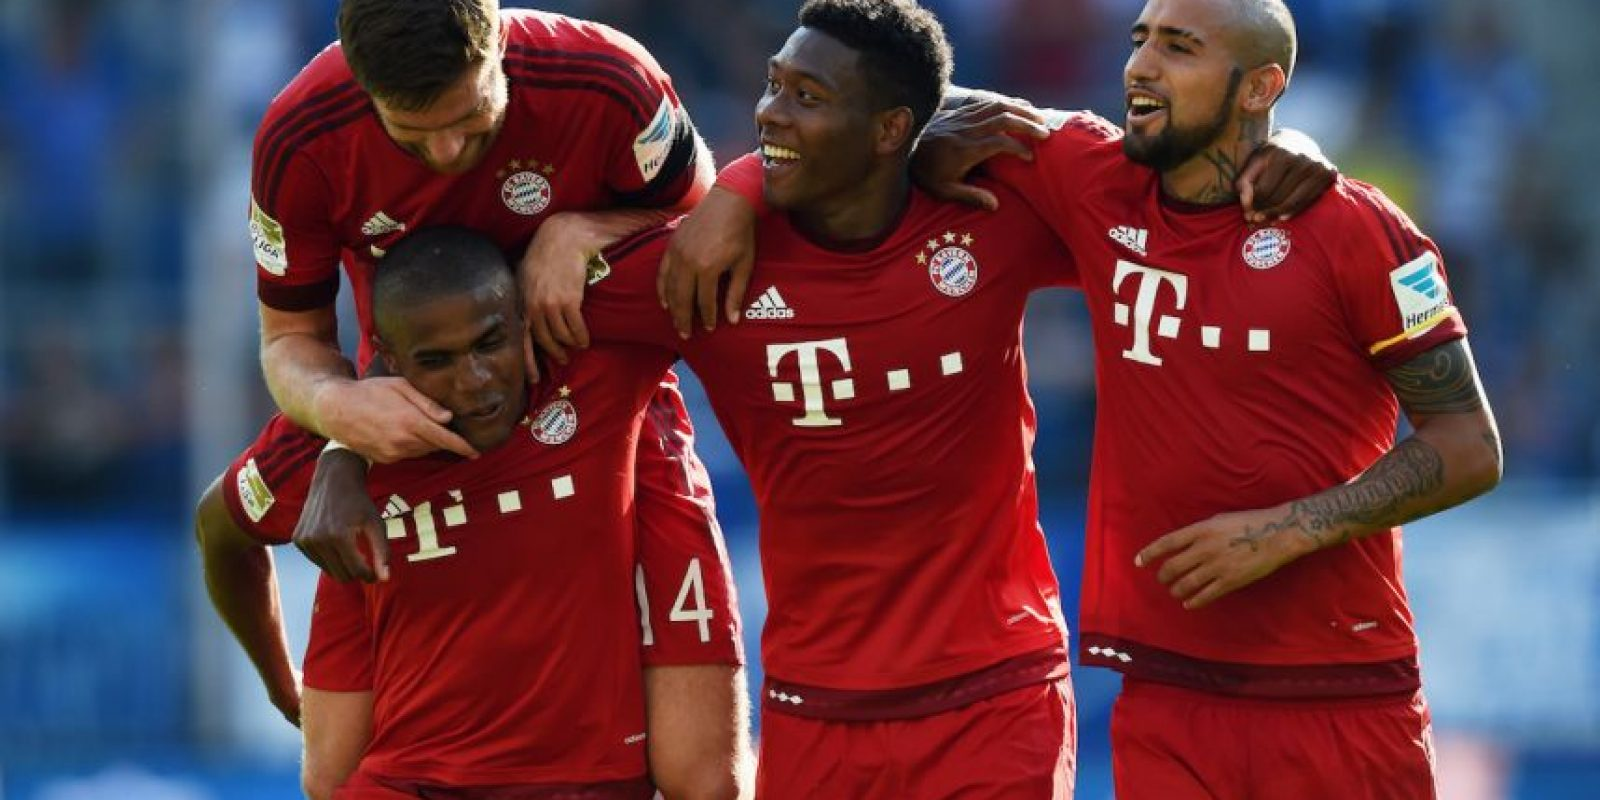 3. Bayern Munich (Alemania) / 559.1 millones de euros. Foto: Getty Images